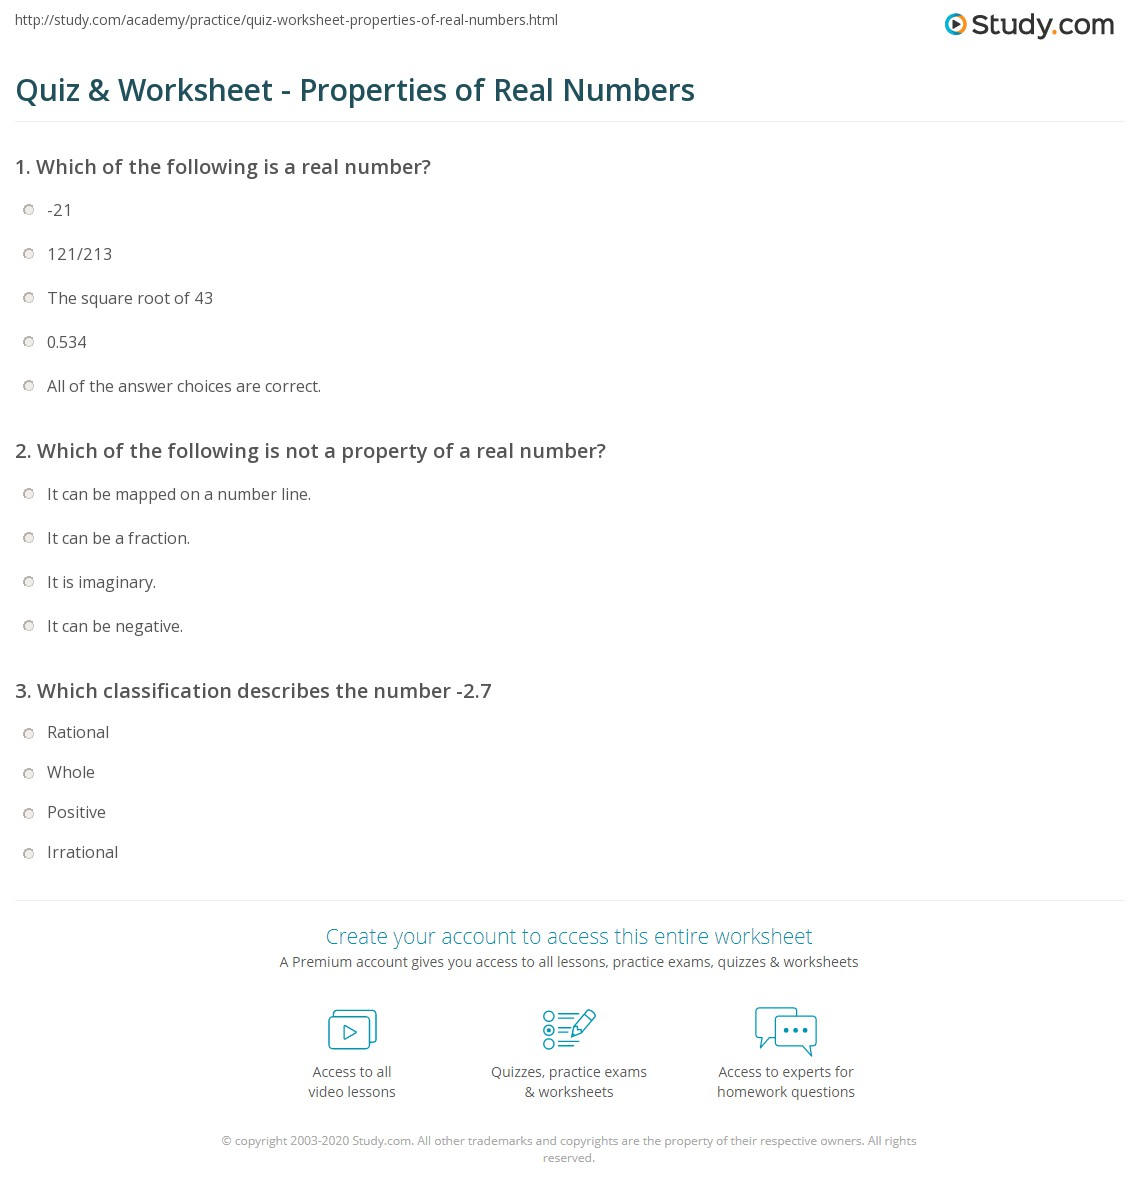 ... Worksheet Answers besides Real Number Properties Worksheet furthermore